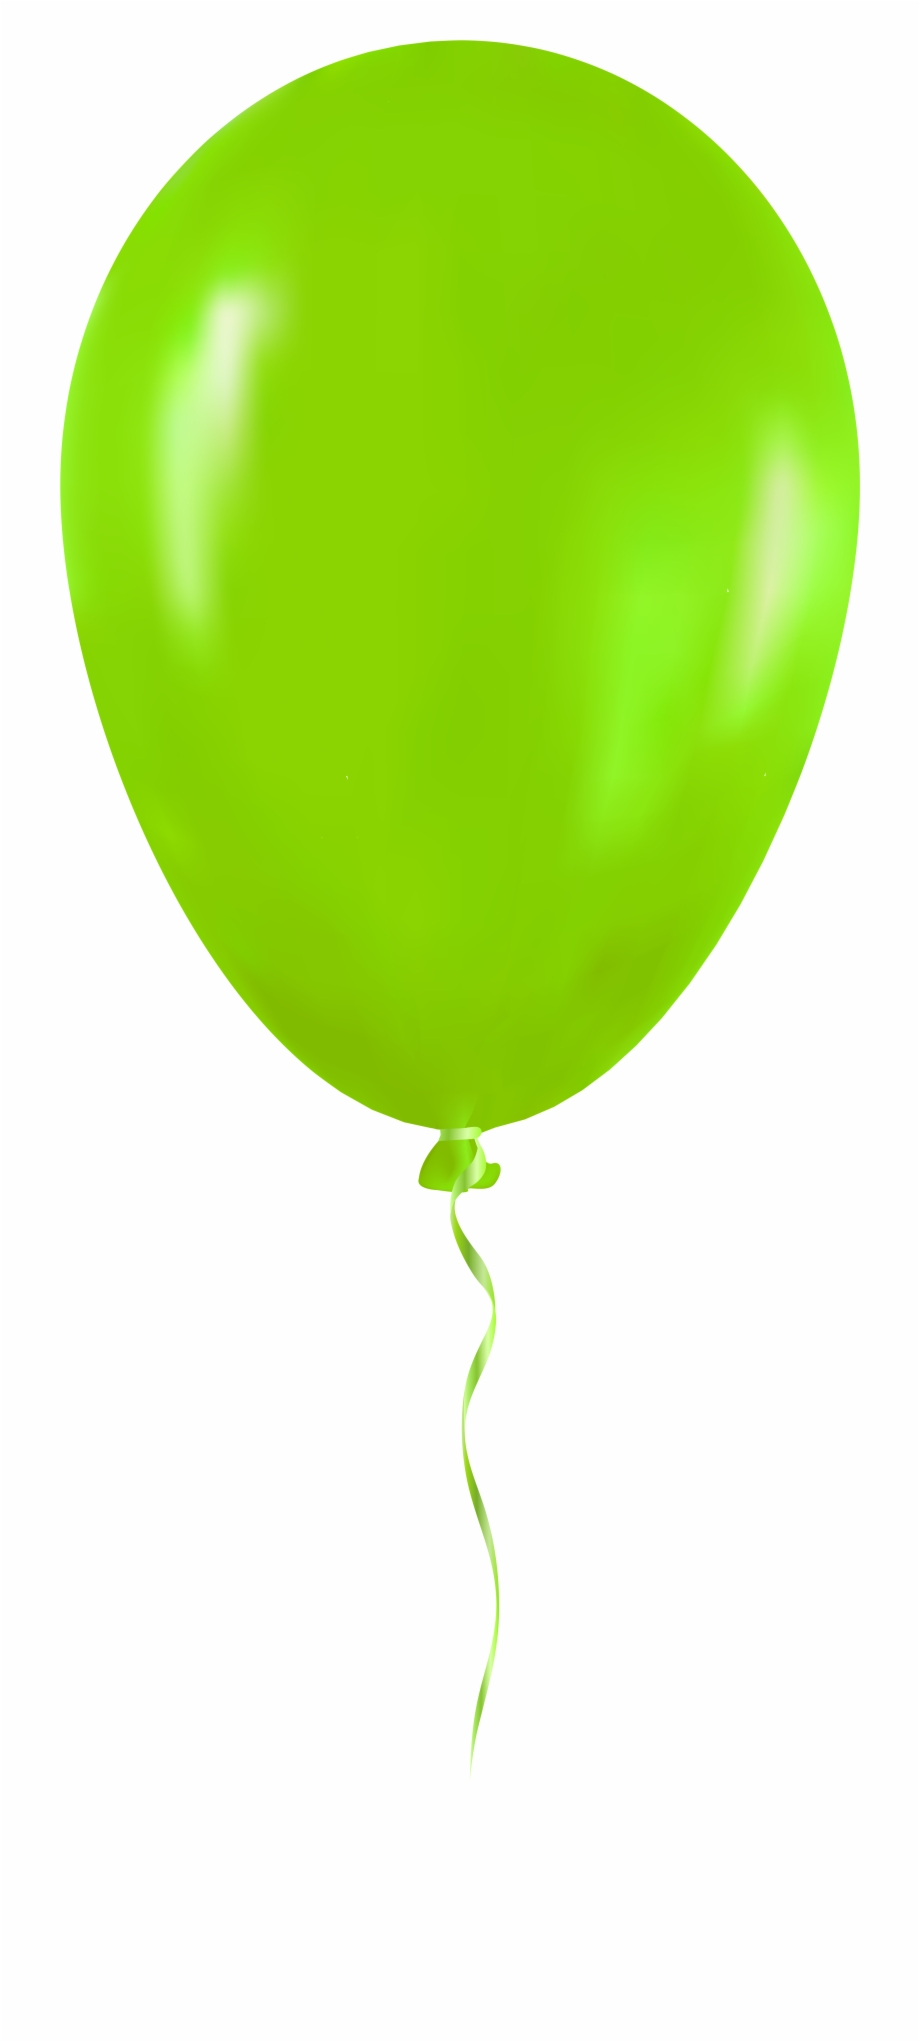 Free pink blue green yellow balloon clipart graphic royalty free Shout Balloon Green - Green Balloon Clipart Png Free PNG Images ... graphic royalty free